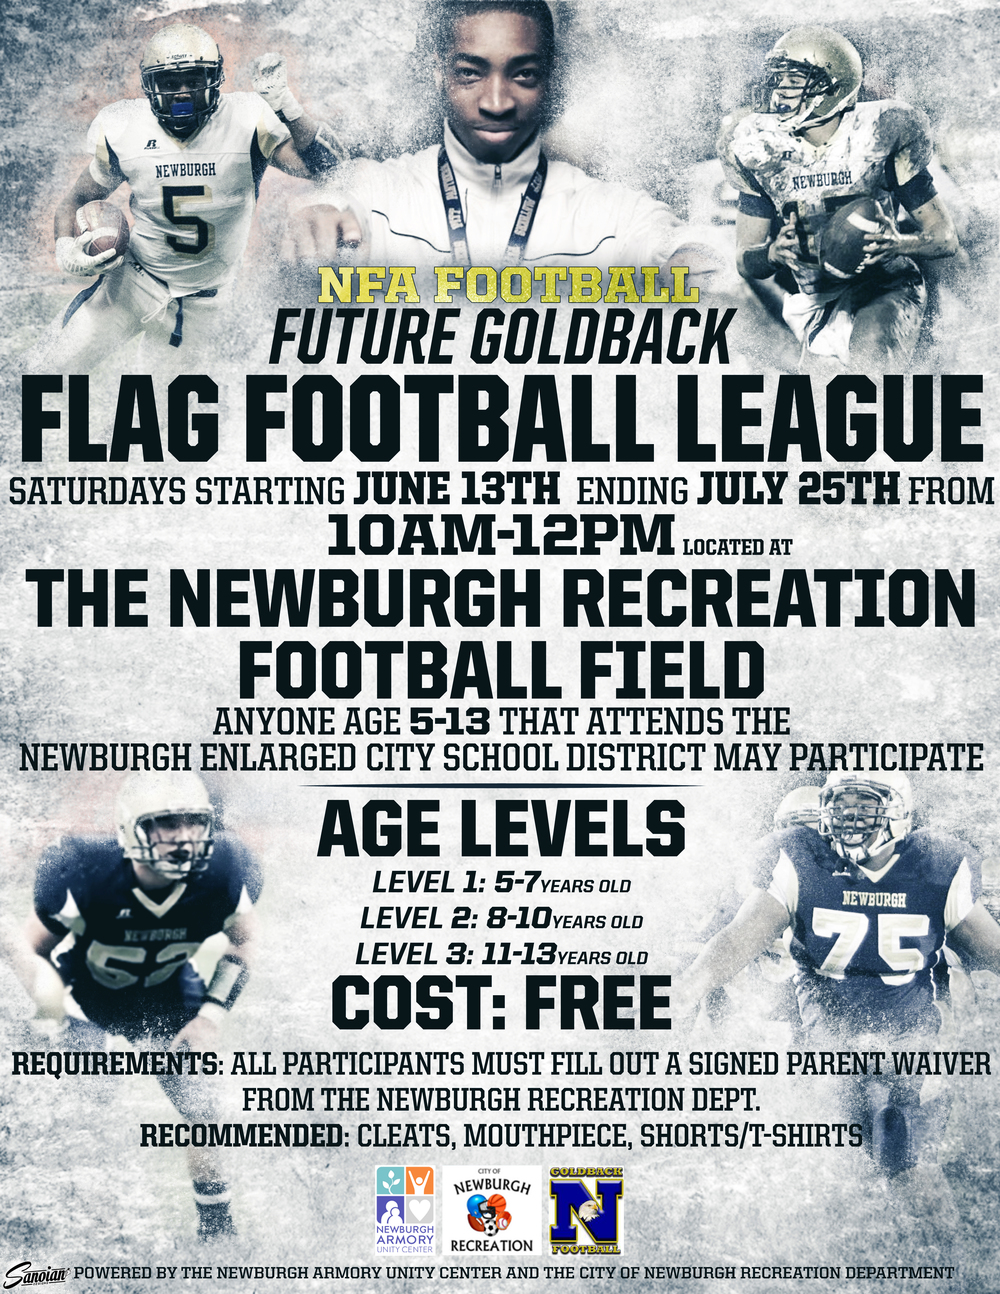 Future Goldback Flag Football League